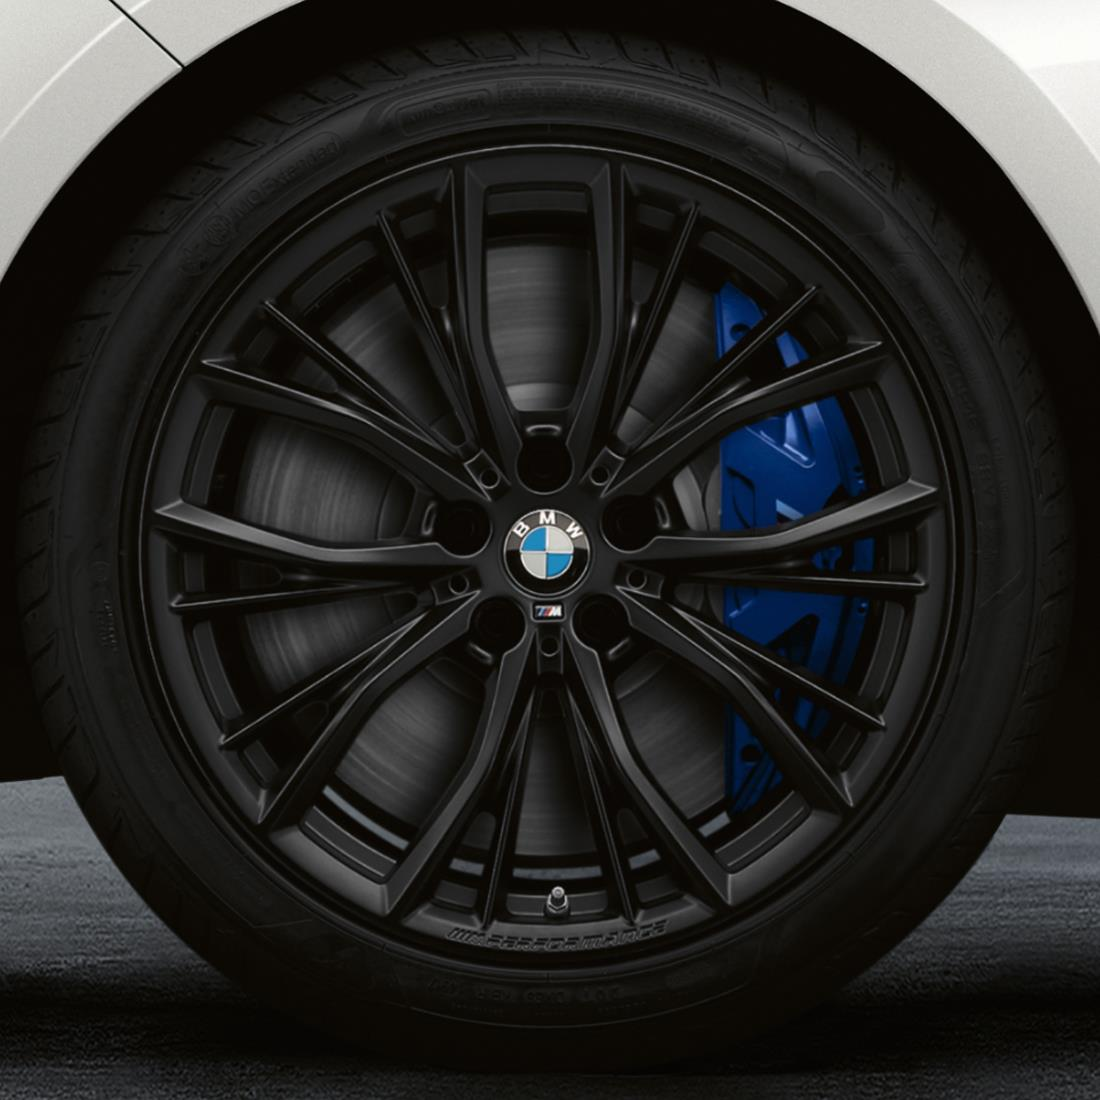 BMW 19-Inch M Performance Double-spoke 786M Complete Winter Wheel and Tire Set - Jet Black Matte